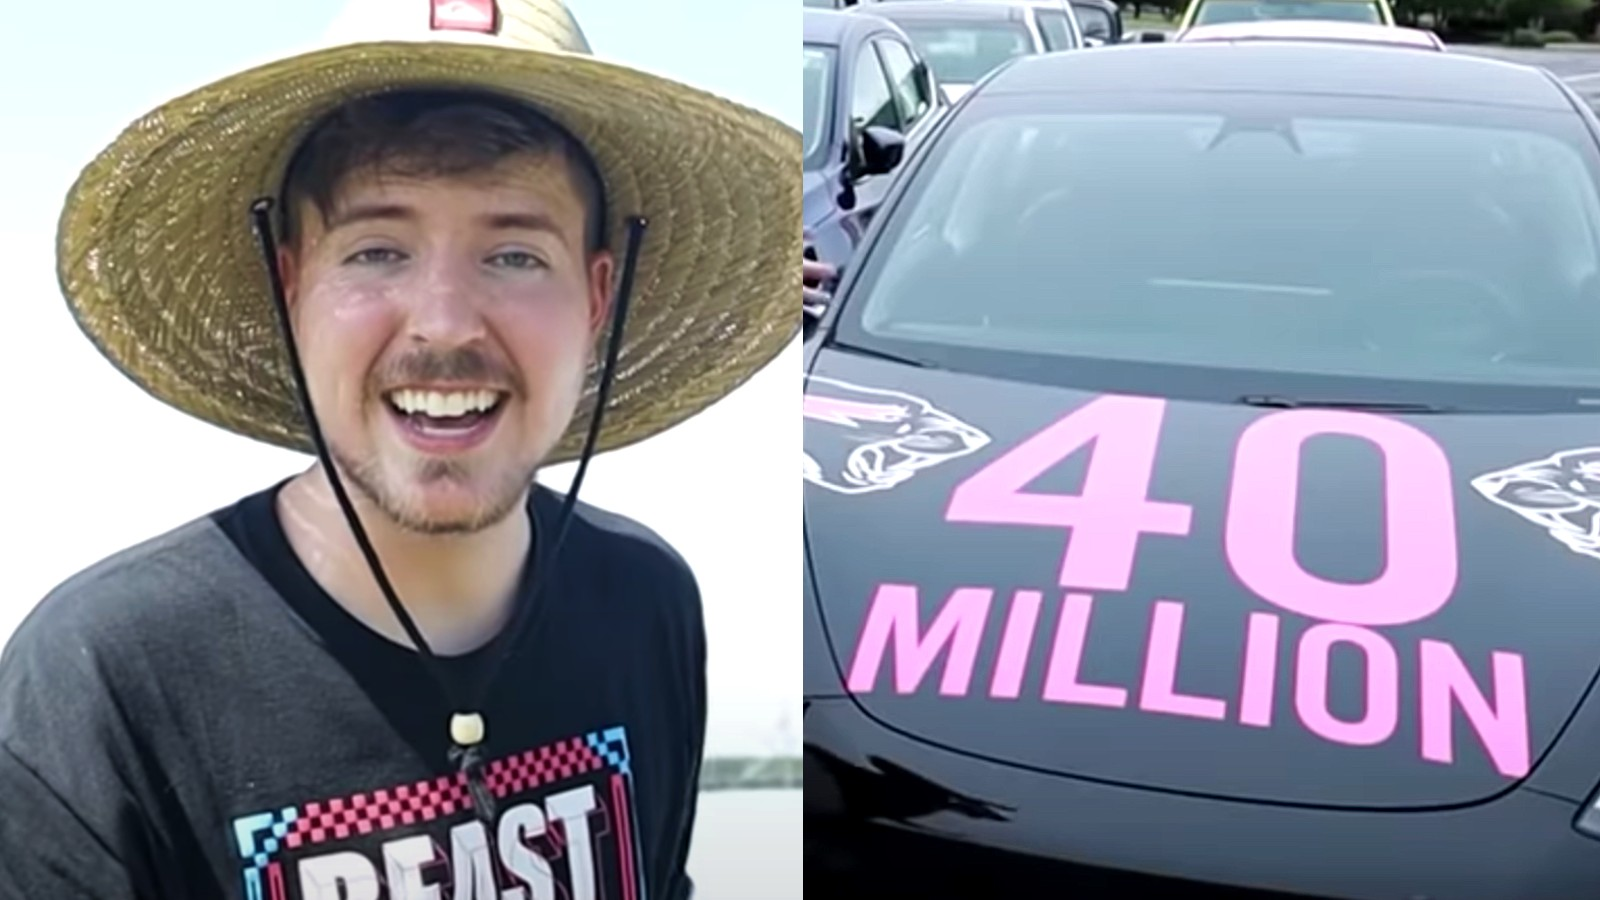 MrBeast gave away 40 cars to his 40 millionth subscriber